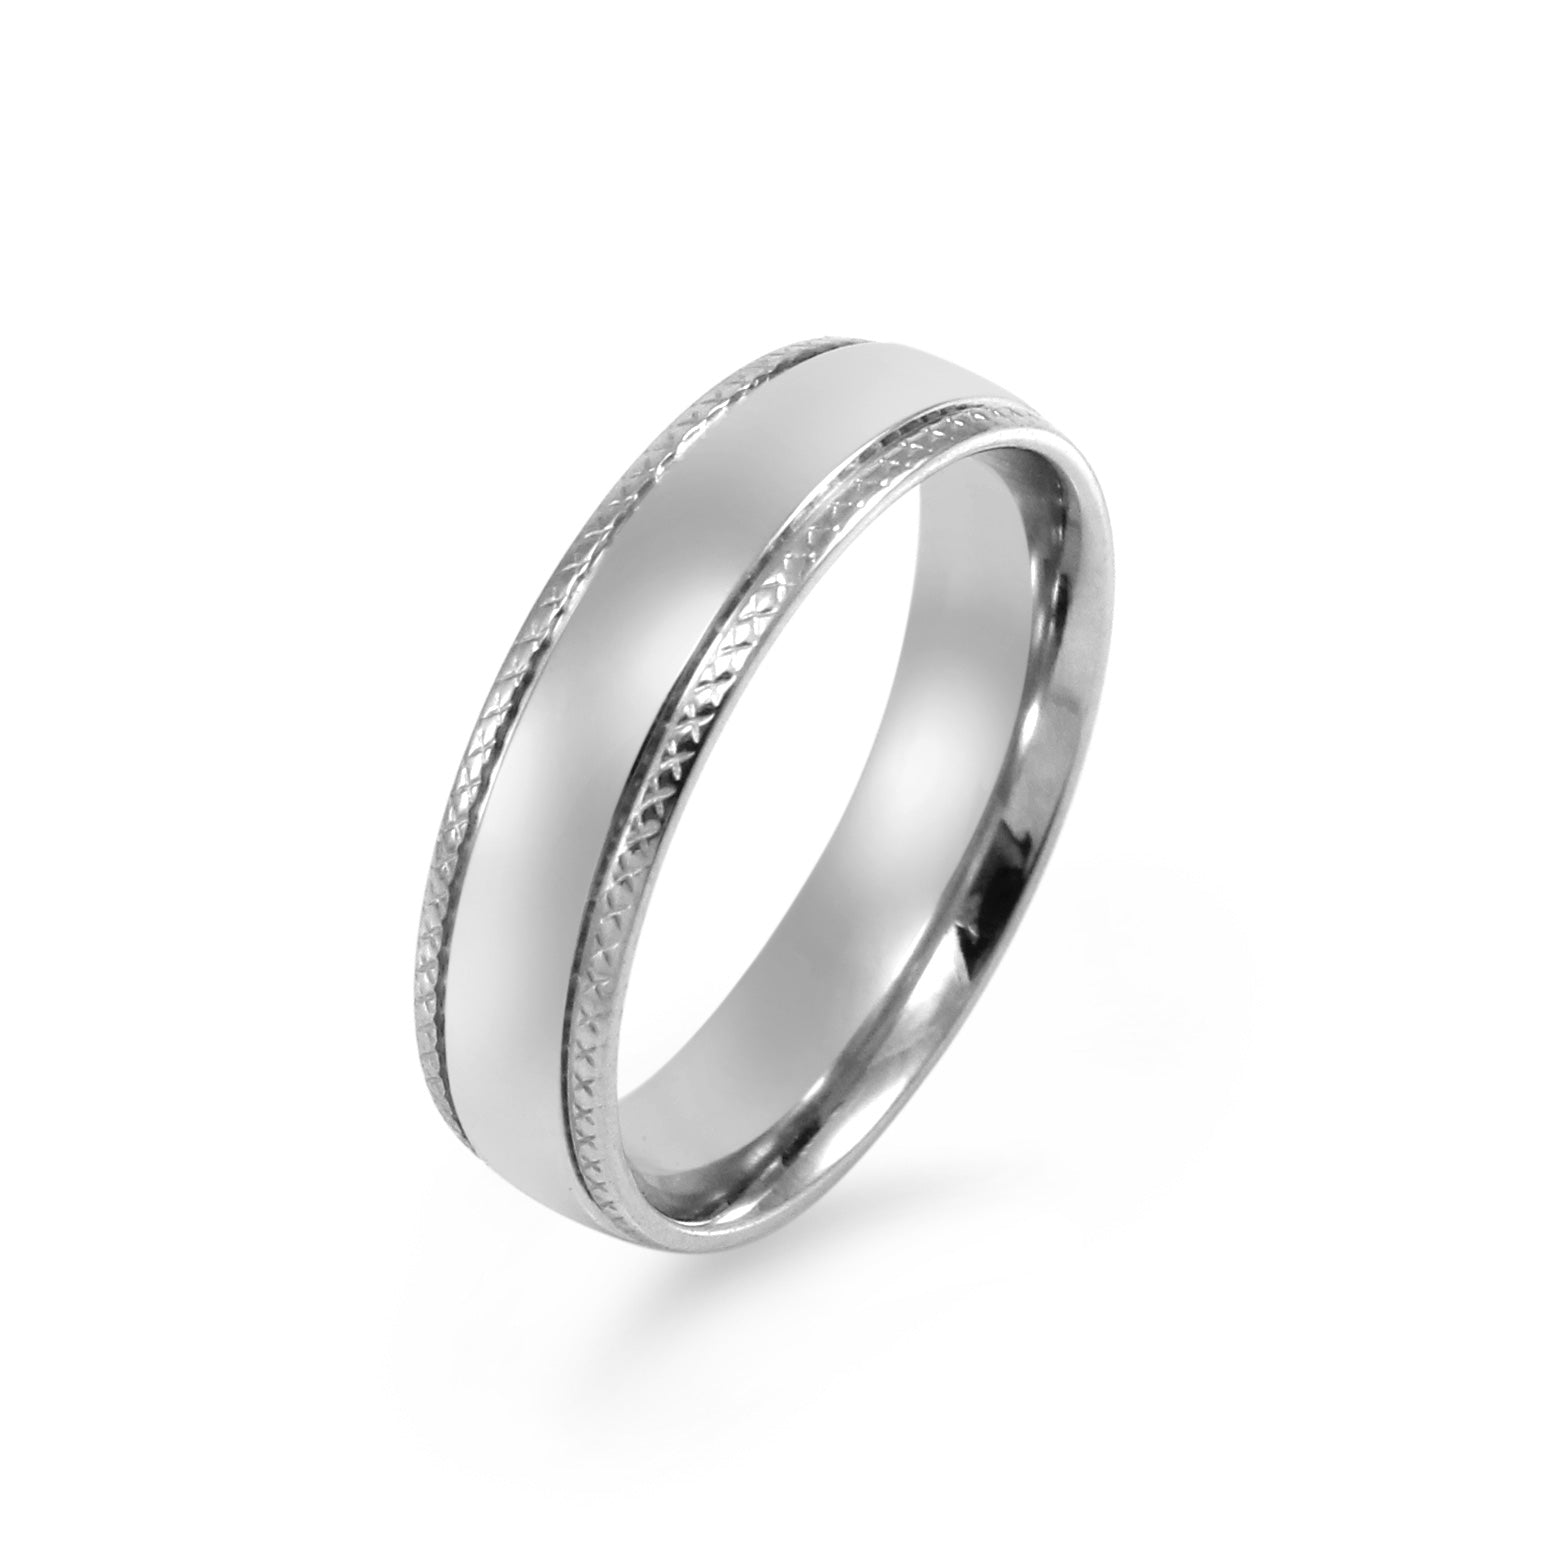 MNC-R528-A Stainless Steel Ring